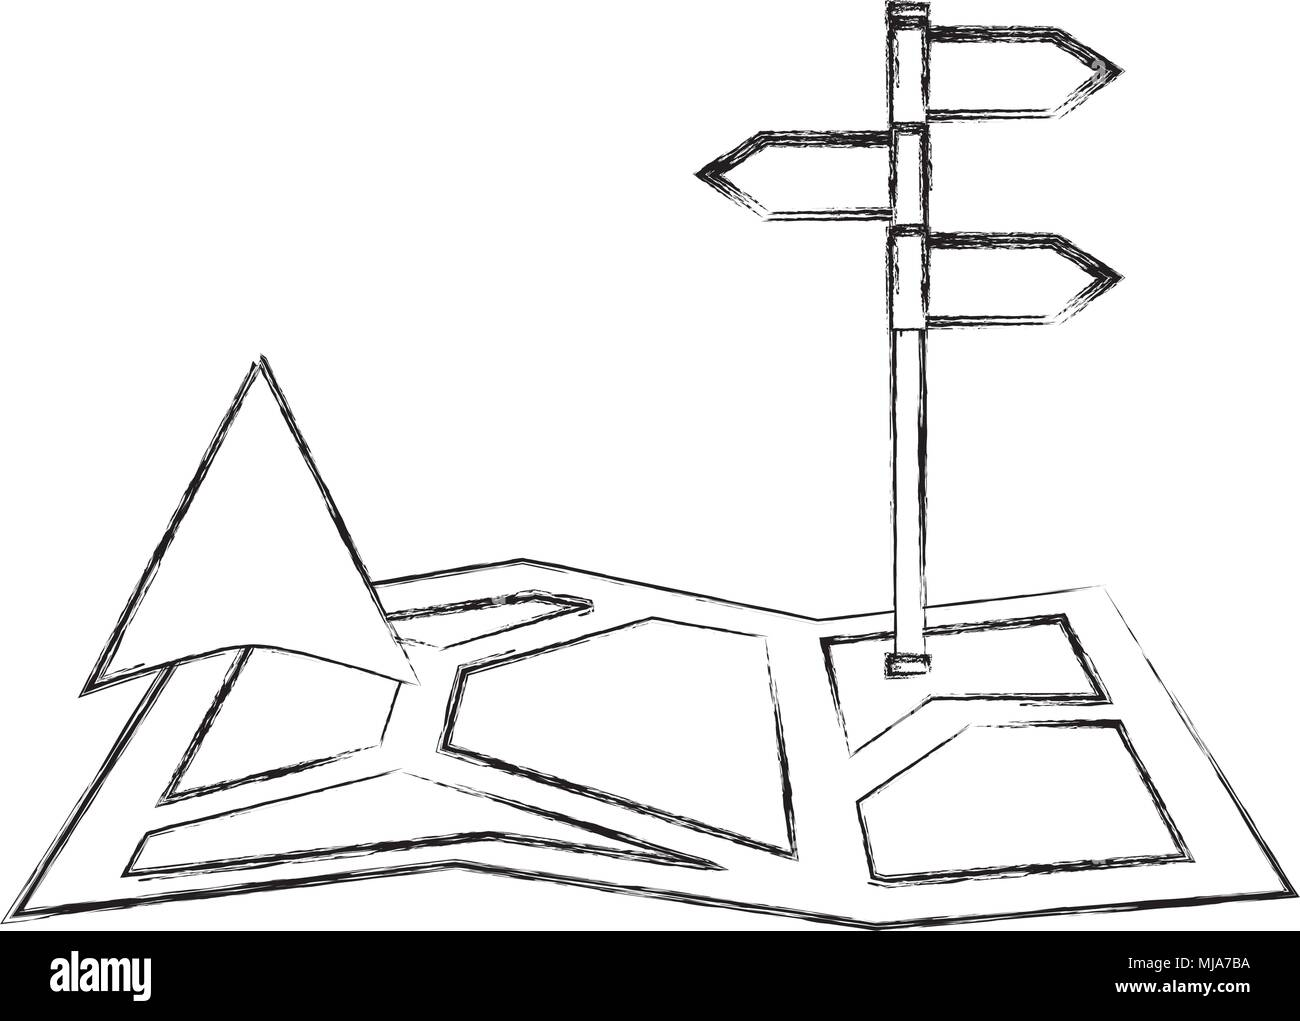 Gps Navigation Map Arrow And Stand Position Image Vector Illustration Sketch Stock Vector Image Art Alamy Download 20,462 hand drawn arrow free vectors. alamy